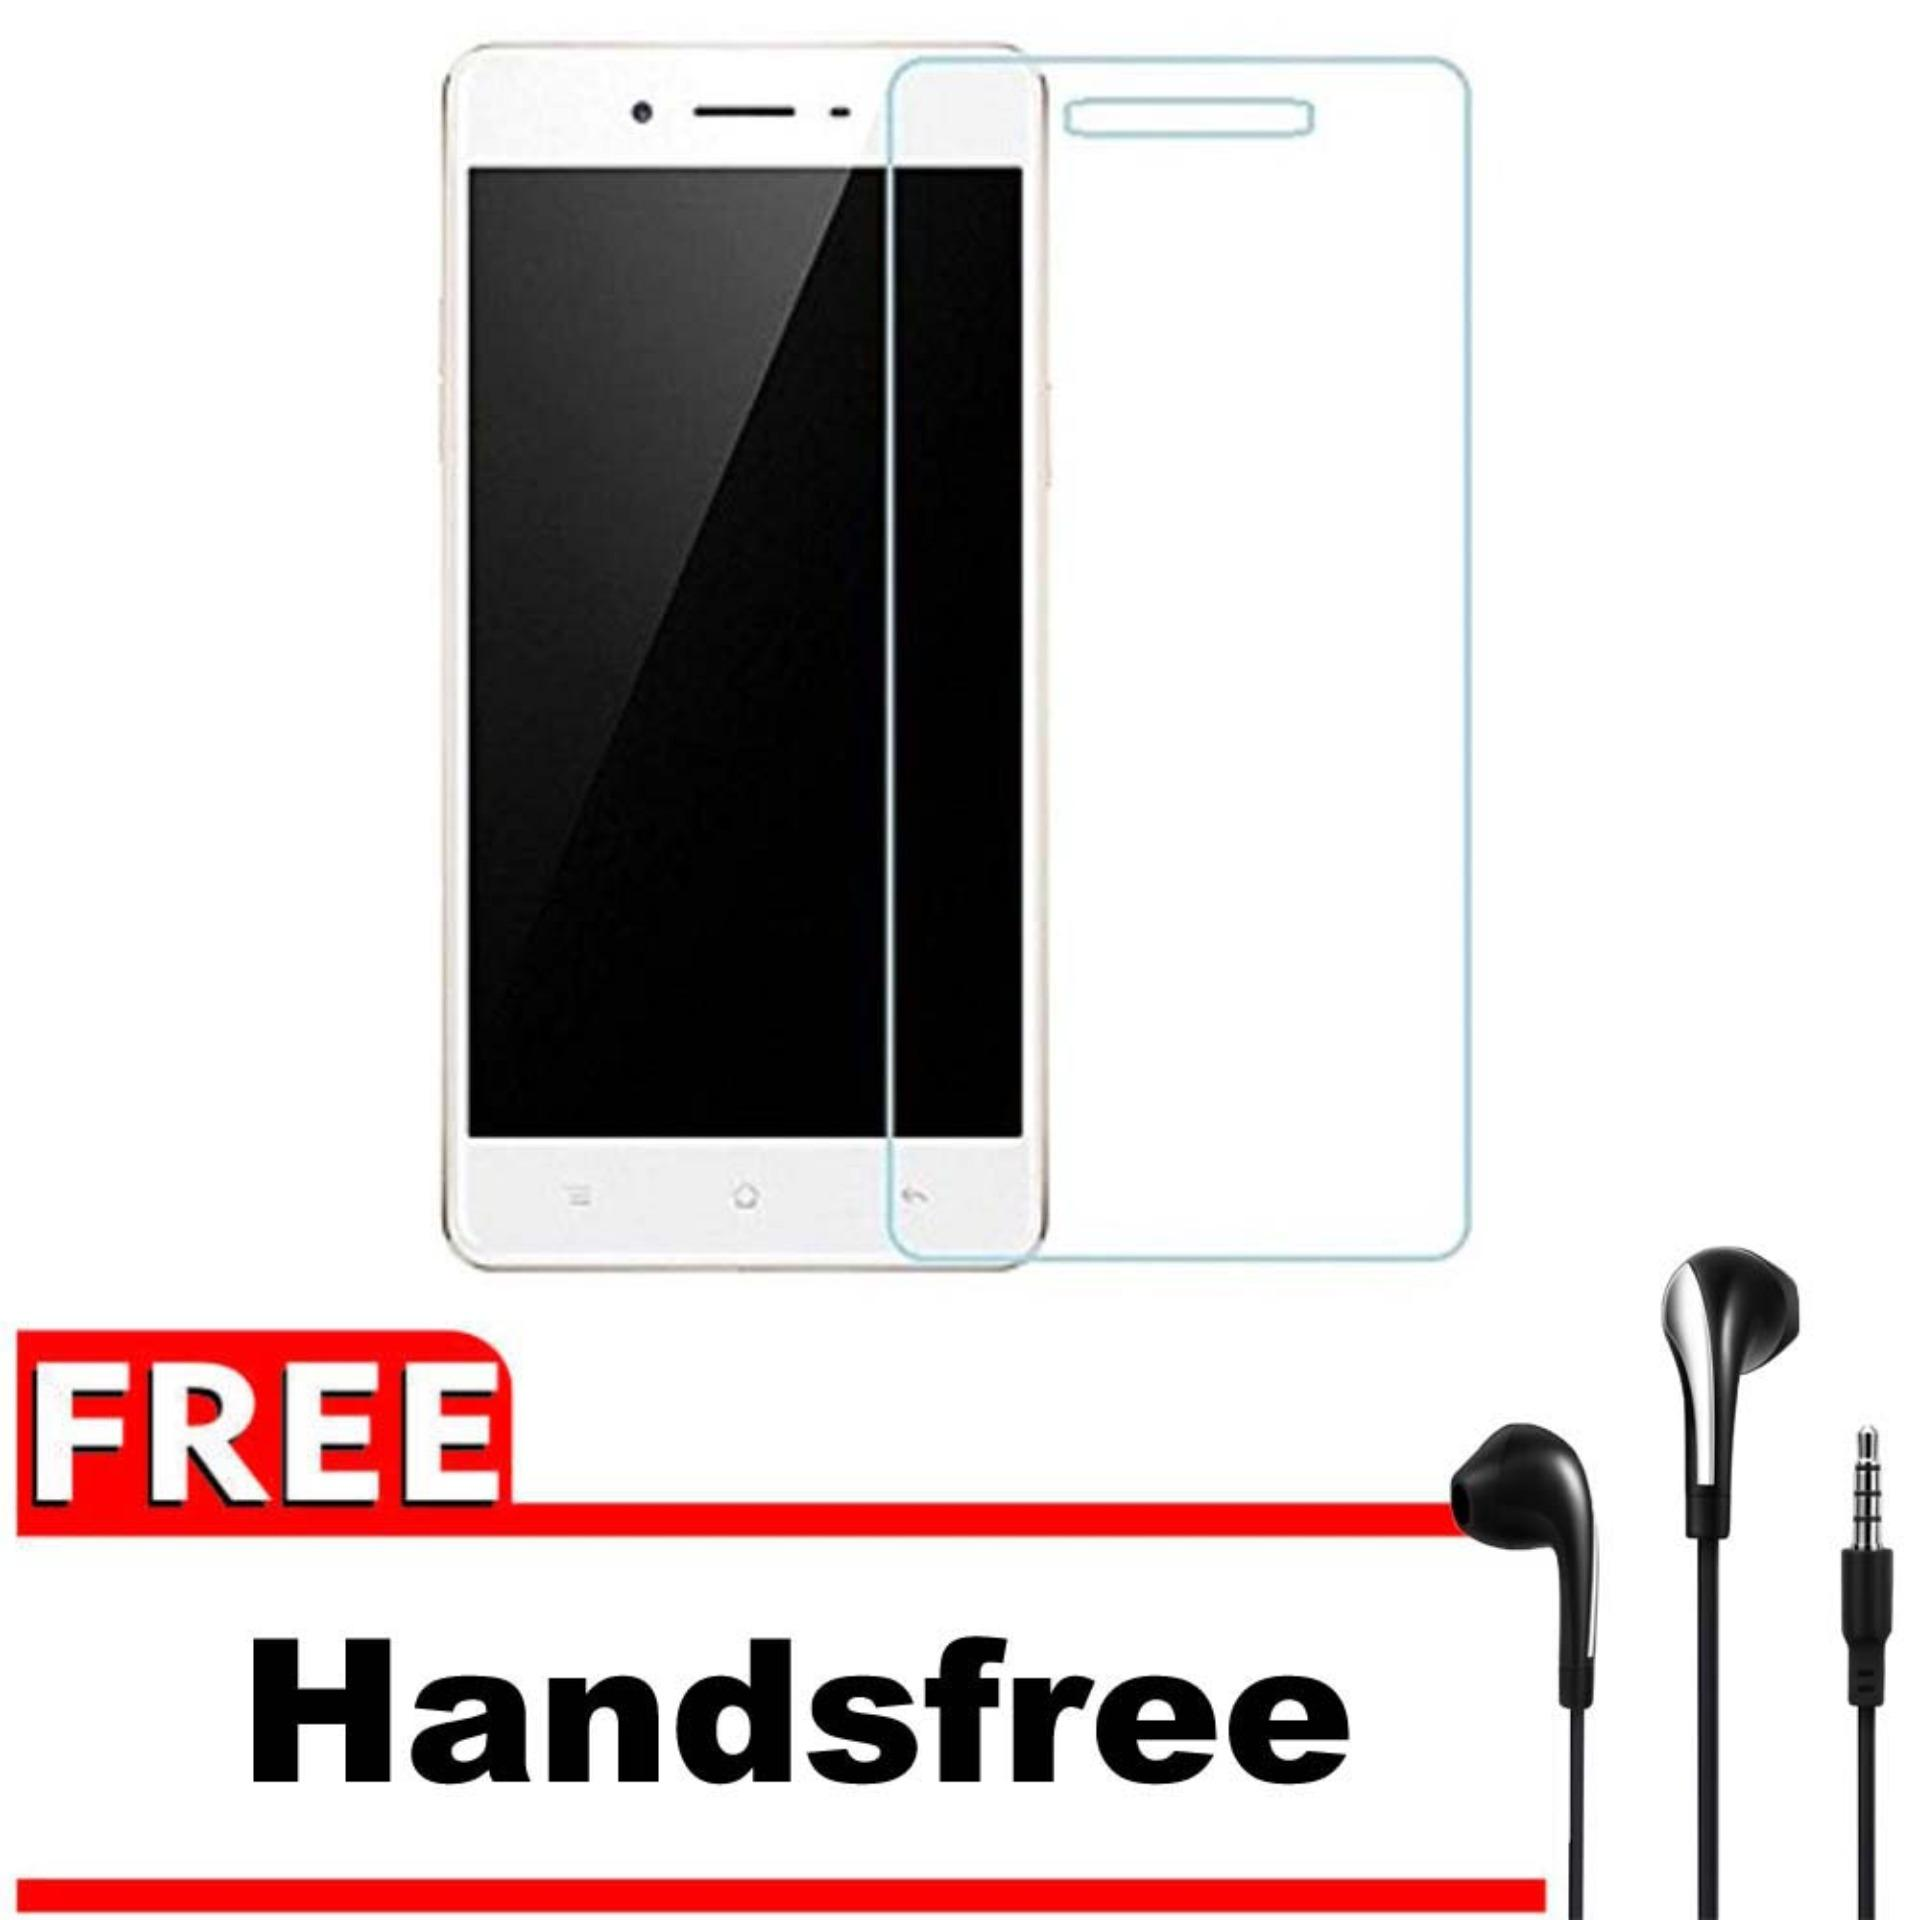 Vn Smartfren Andromax E2+ Plus Tempered Glass 9H Screen Protector 0.32mm + Gratis Free Handsfree